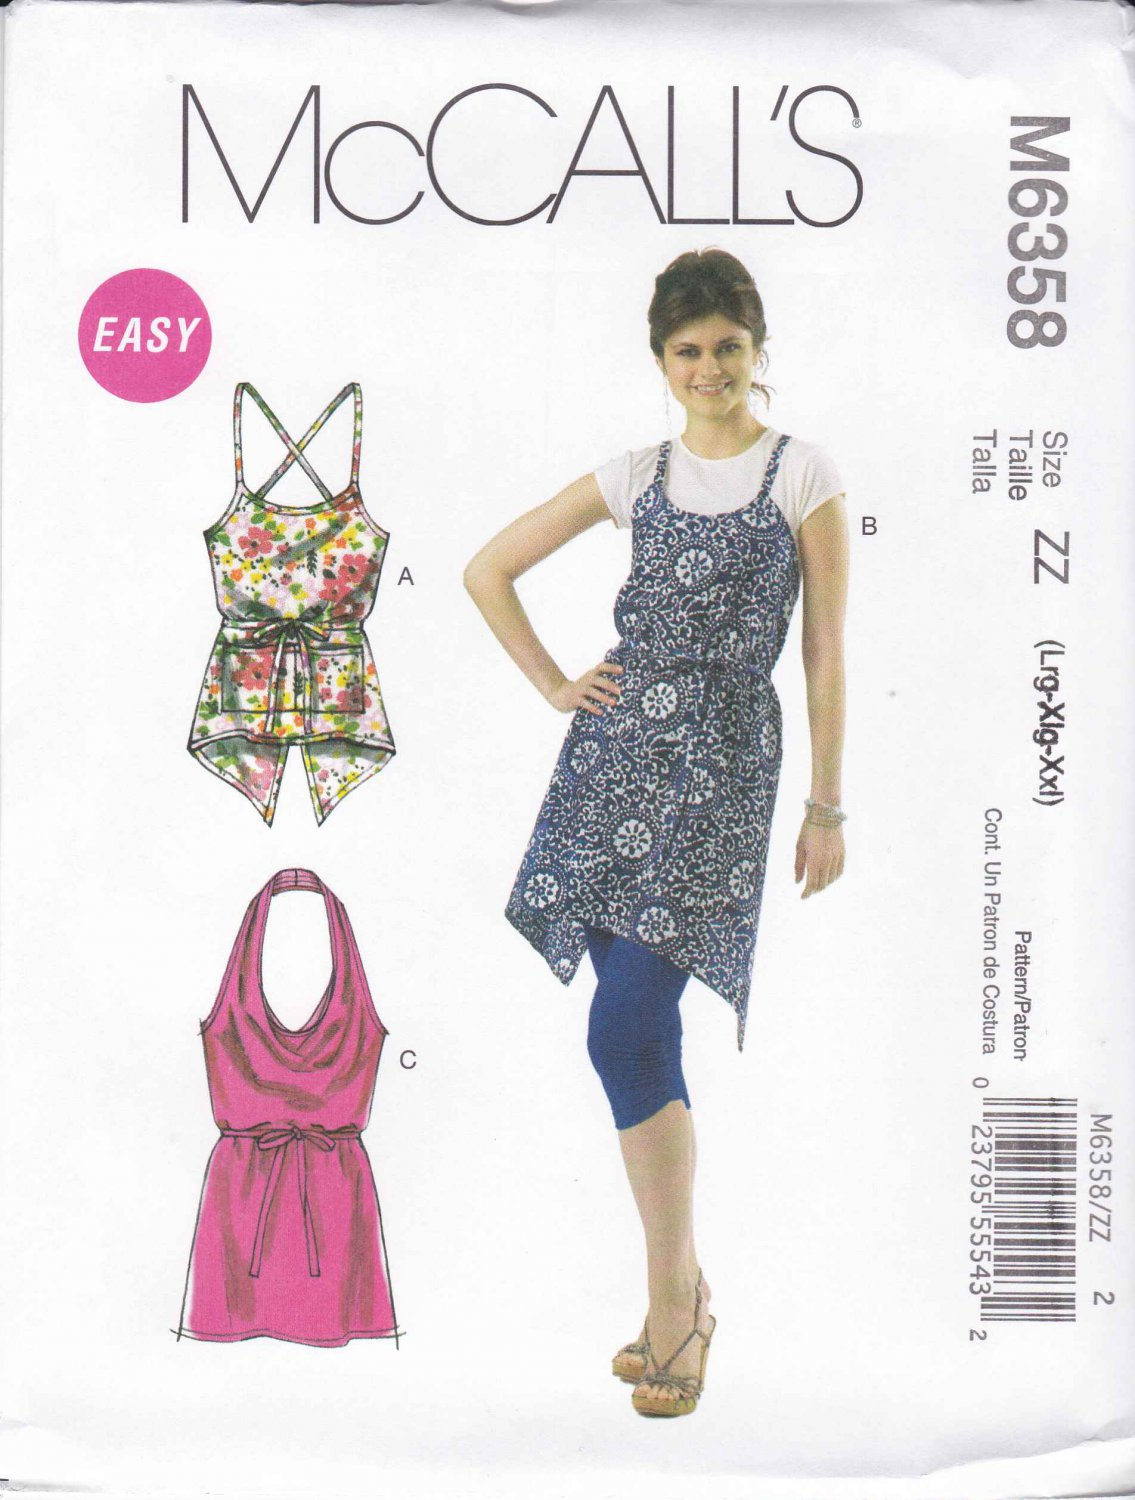 McCall's Sewing Pattern 6358 Misses Size 4-14 Easy Summer Apron Jumper Style Tops